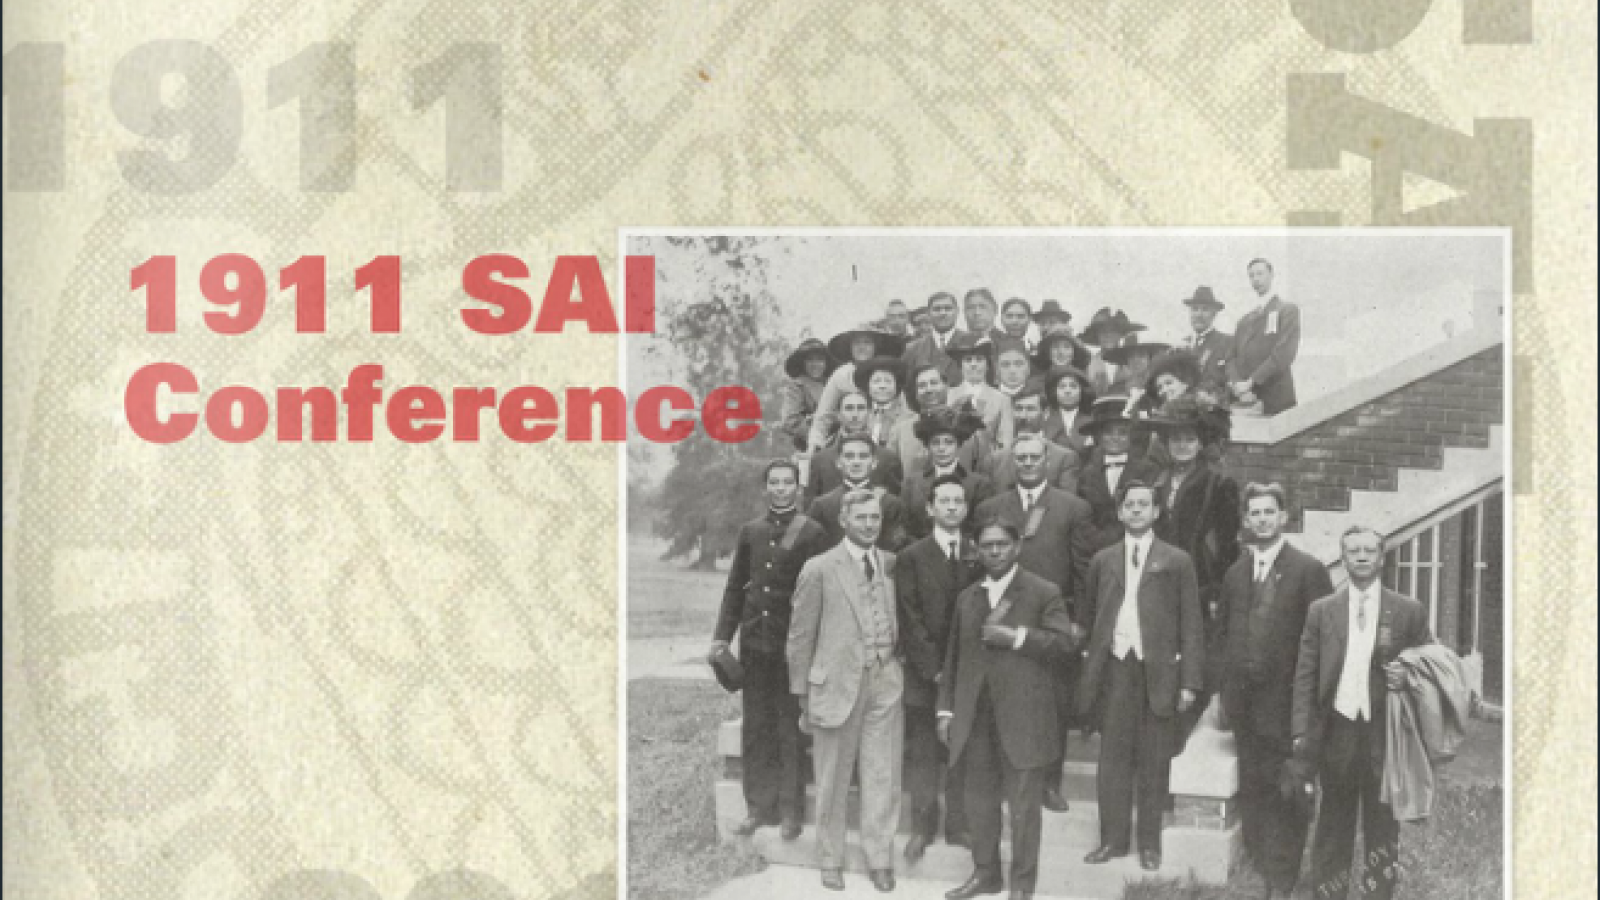 Society of American Indians Conference, Image 1